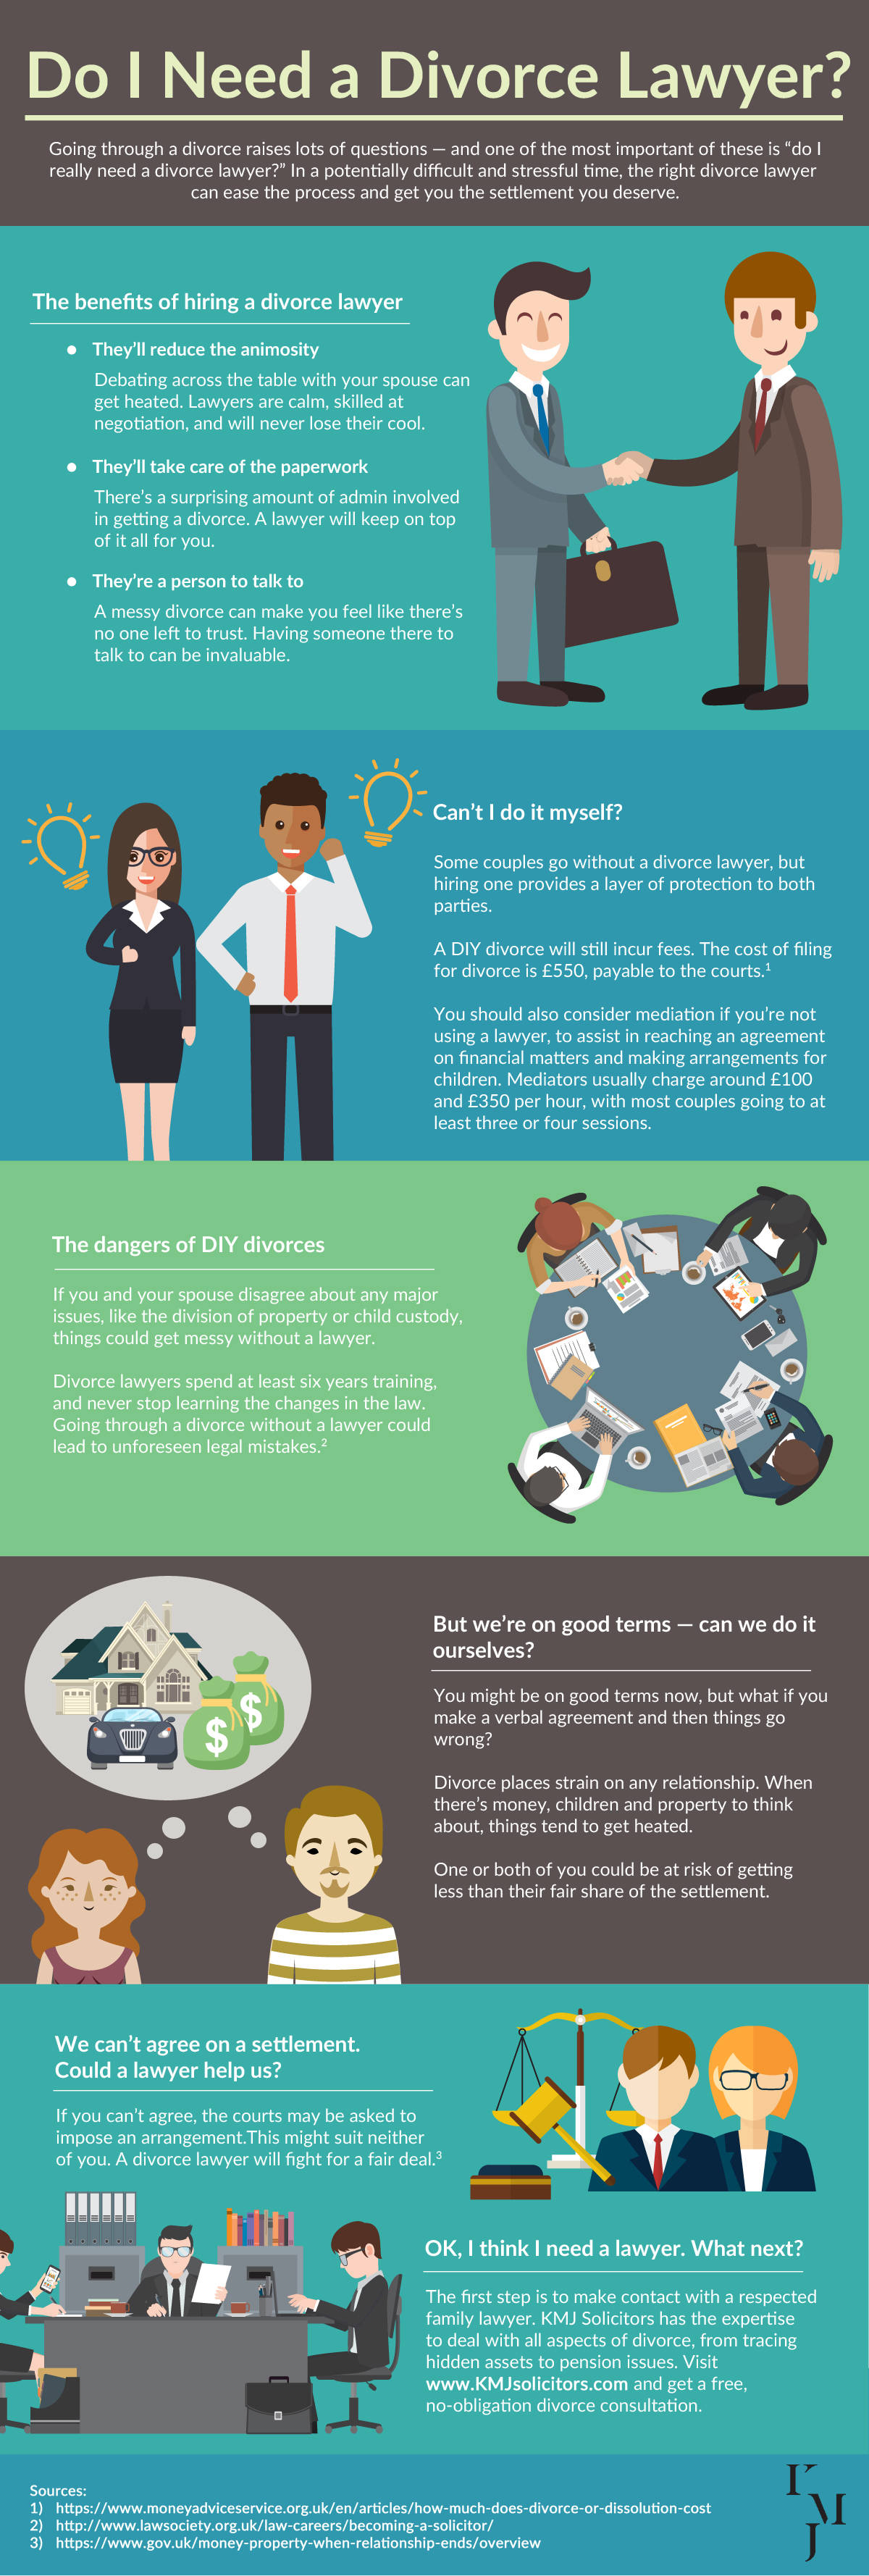 "An infographic answering the question ""Do I Need a Divorce Lawyer?"""